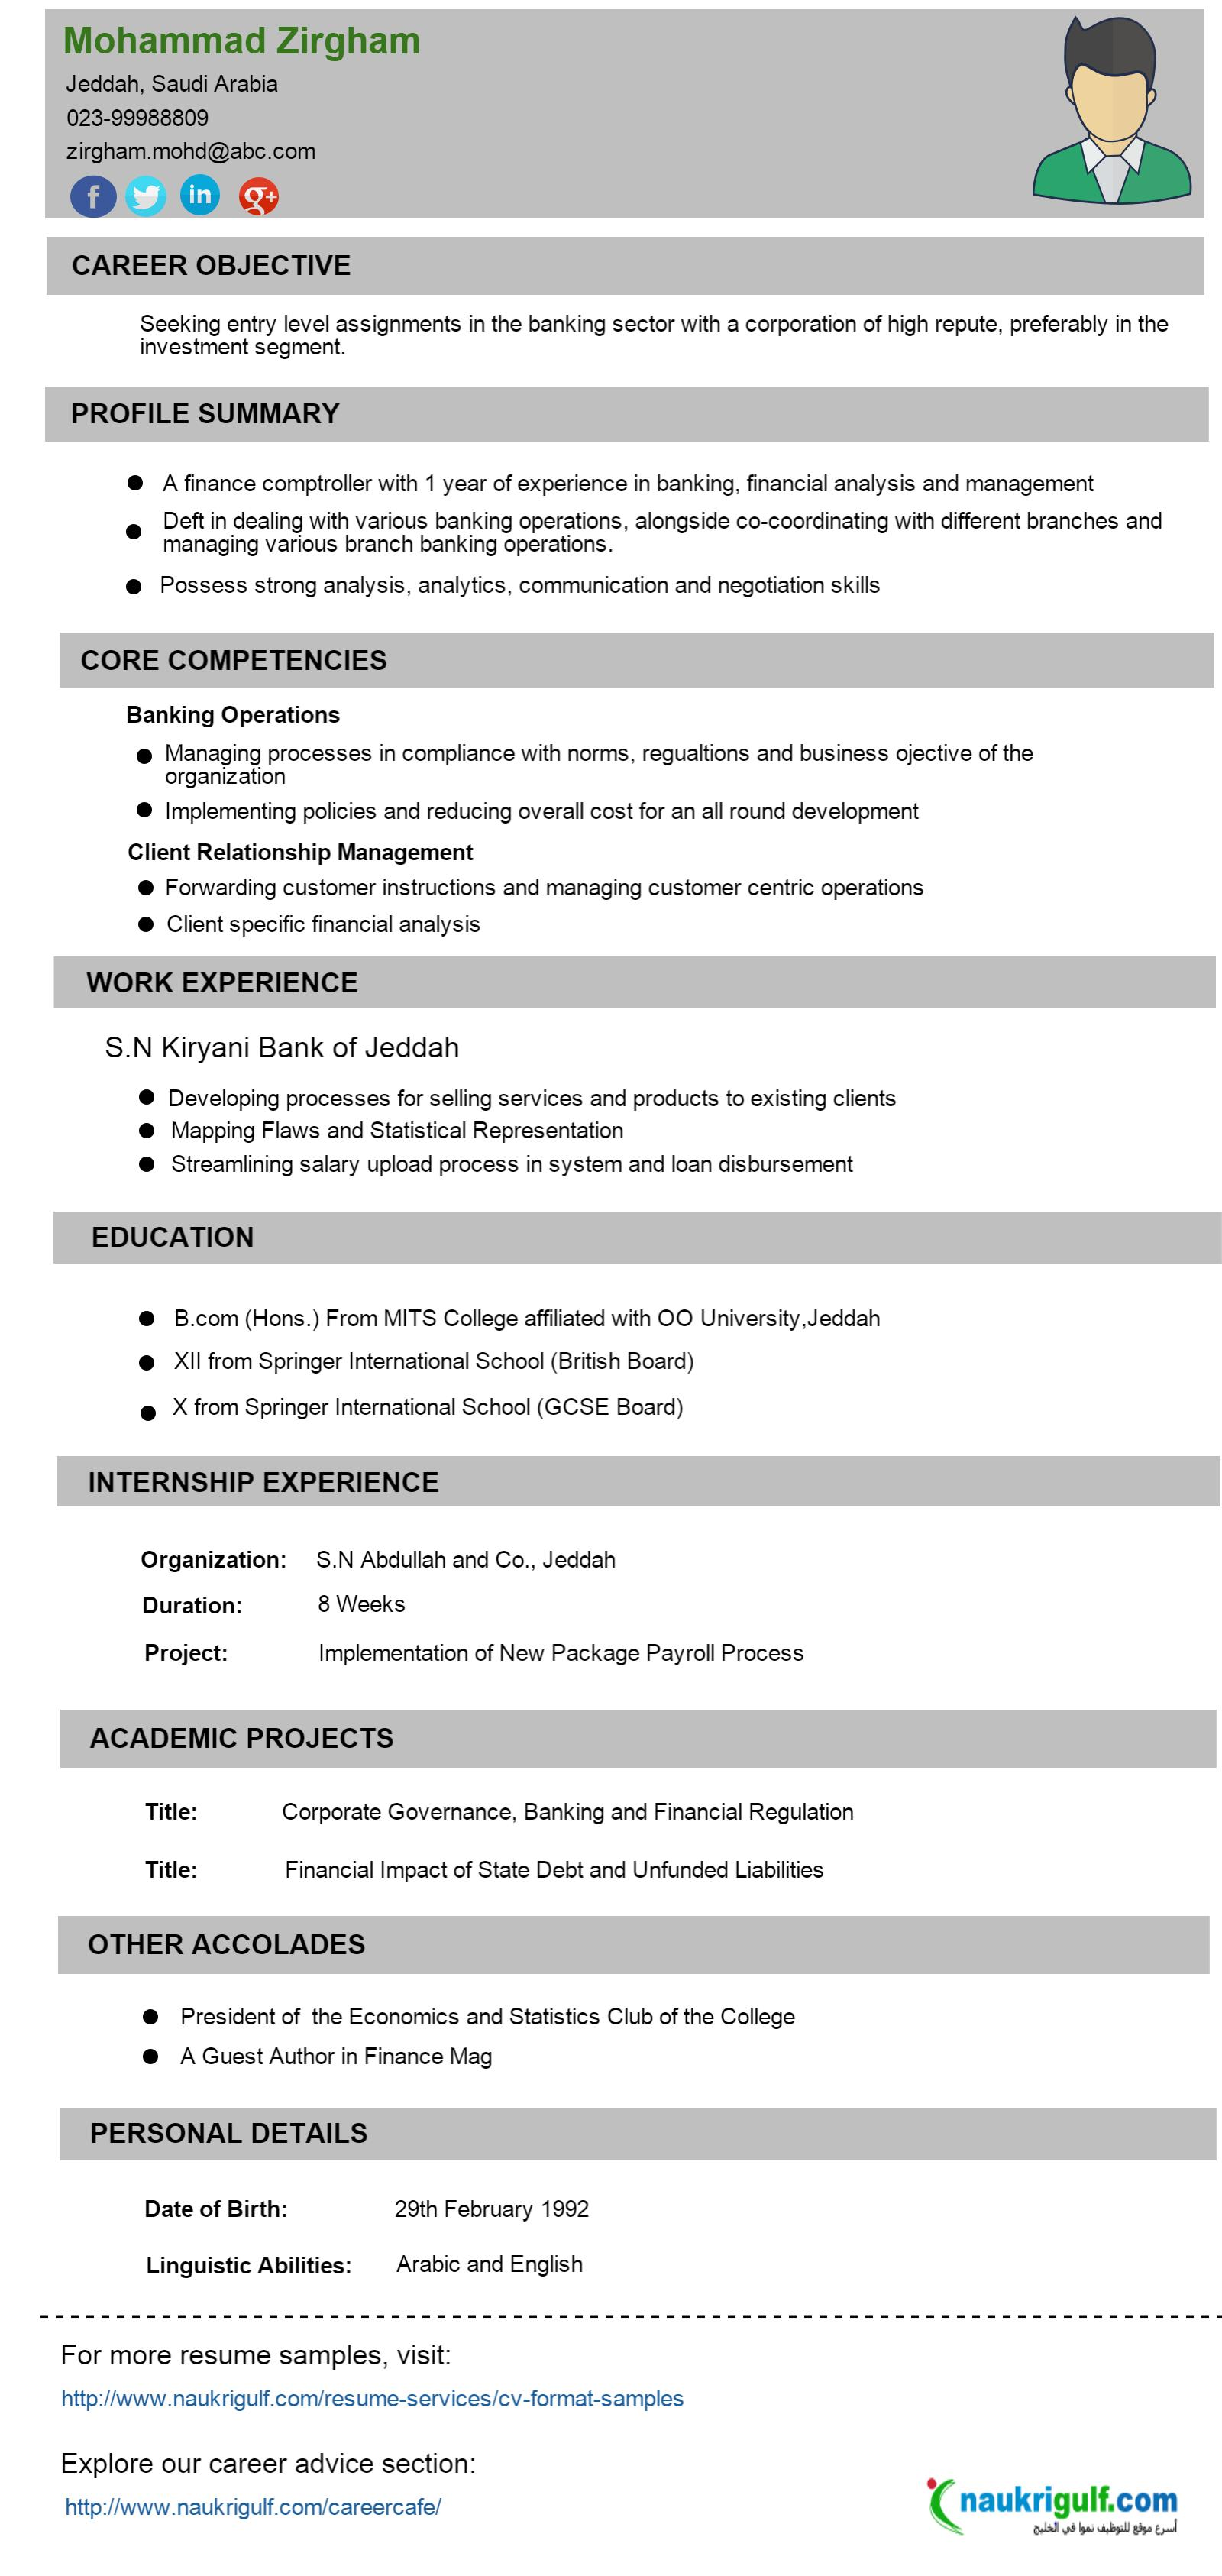 resume Banking Resume Format For Experienced cv format banking finance resume sample naukriuglf com for job